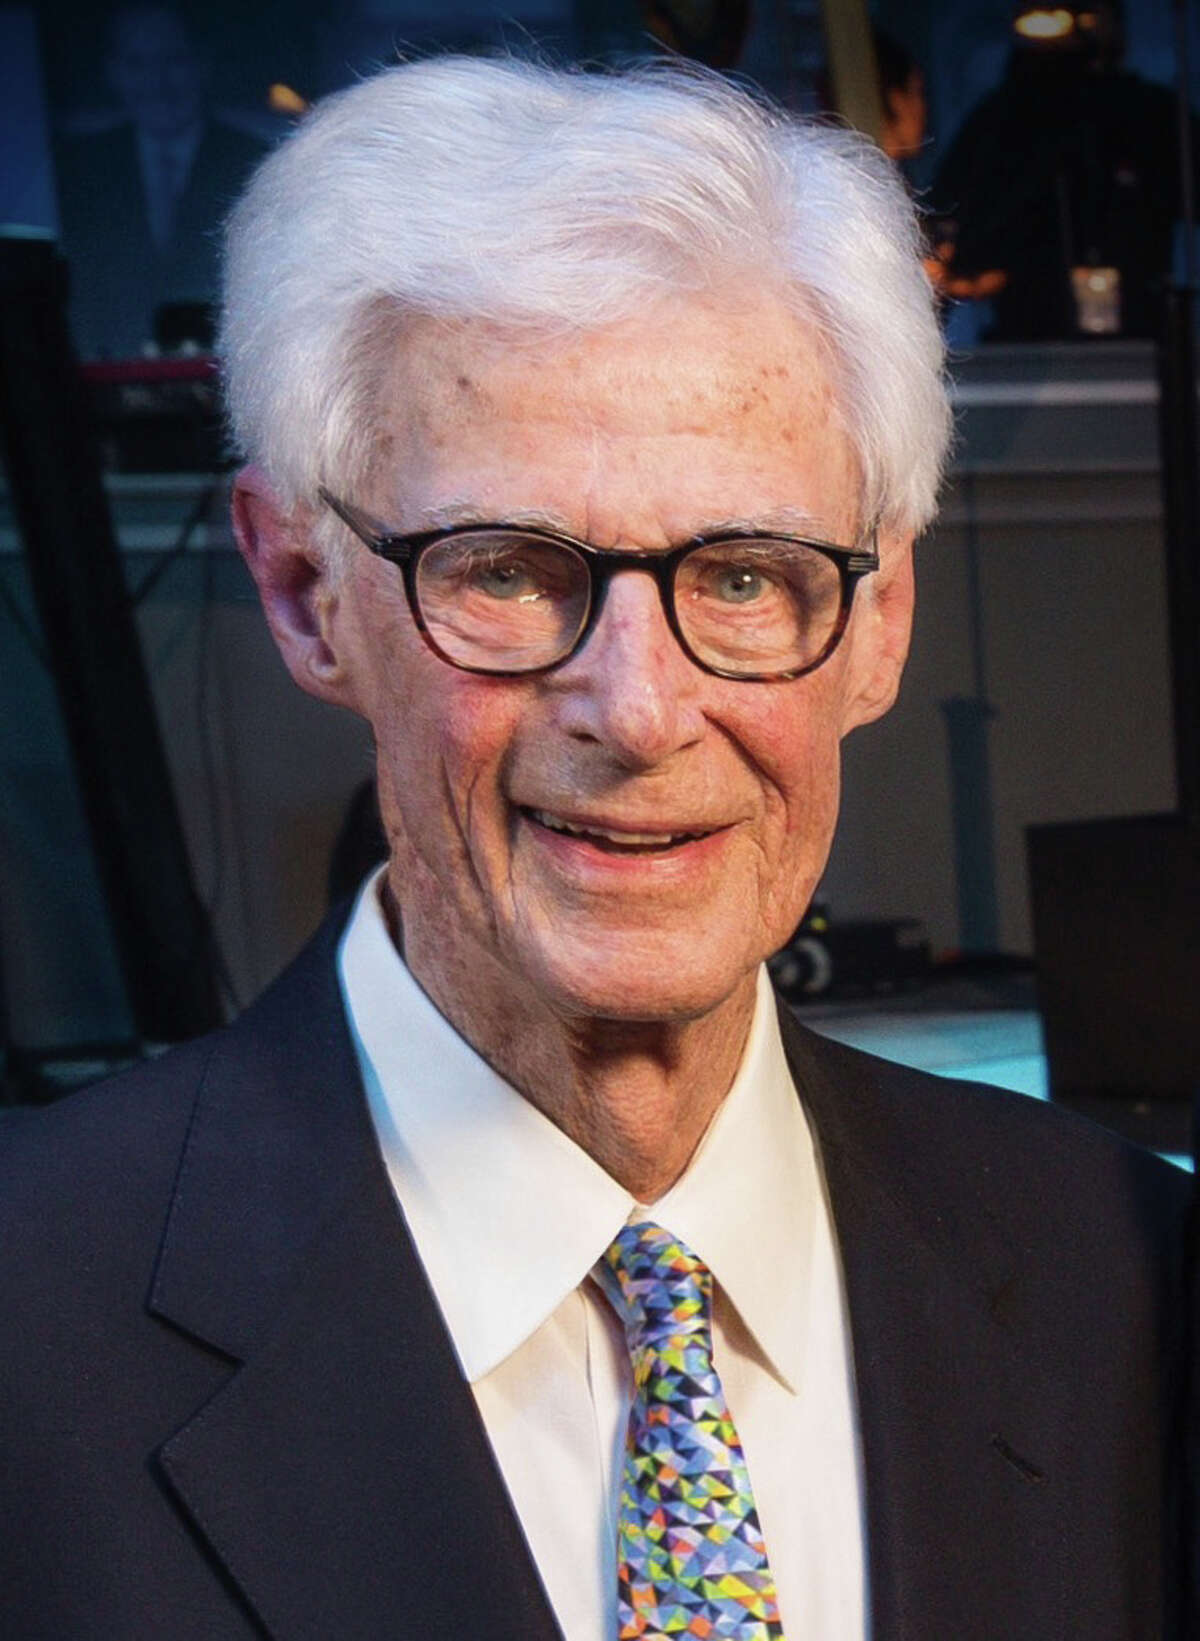 Dr. Charles A. LeMaistre, former president of MD Anderson, who passed away, Jan. 28, 2016. As the second-full time president of M.D. Anderson, a role he held for 18 years, LeMaistre implemented a cancer prevention program, earning his reputation as